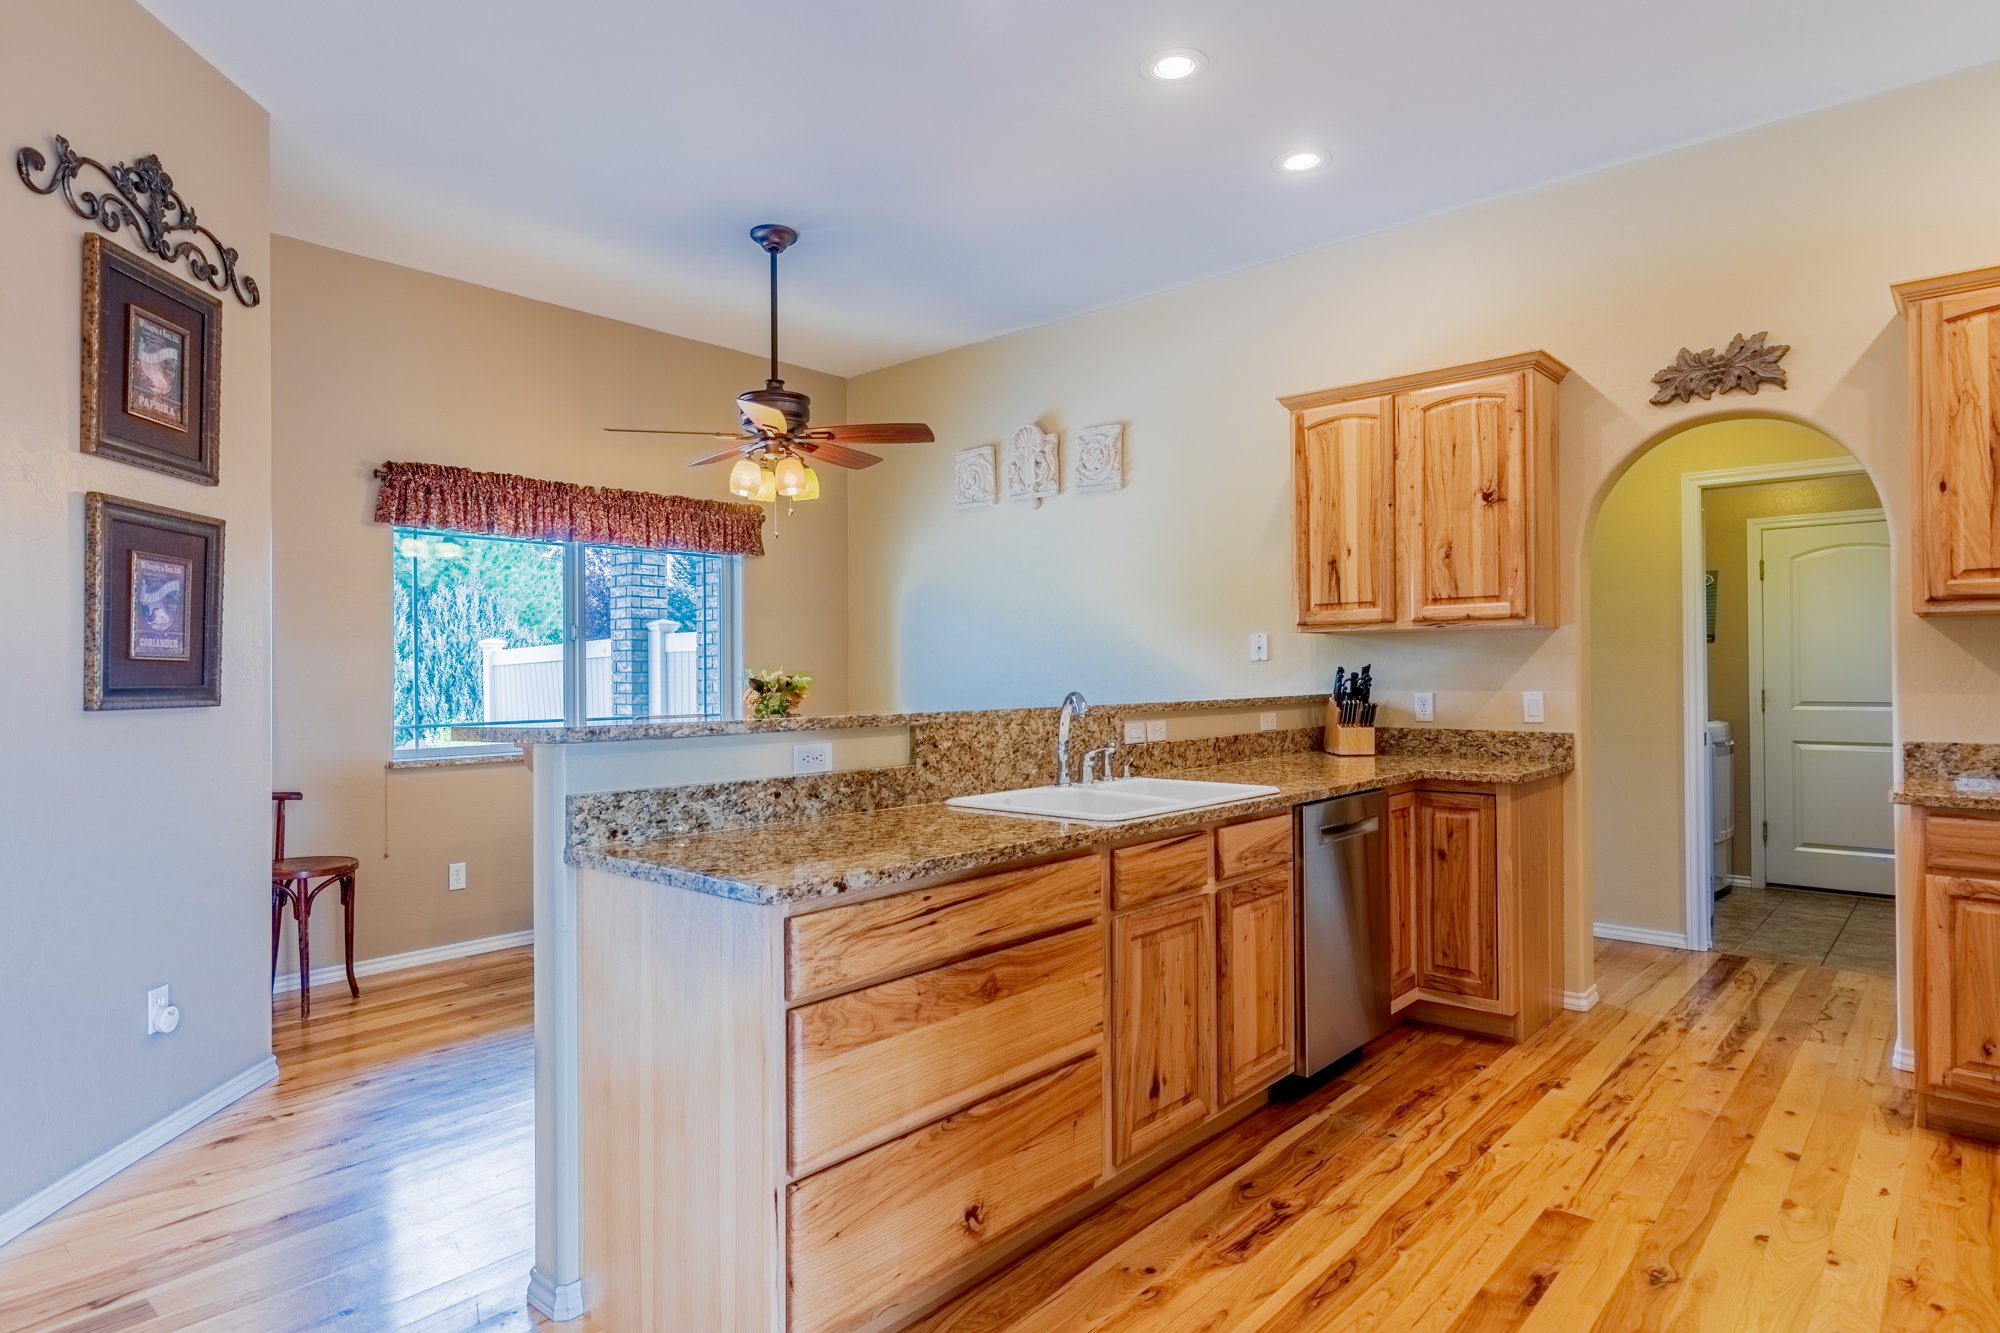 Kitchen and Breakfast Nook - 2941 Ivy Dr Montrose, CO 81401 - Atha Team Real Estate